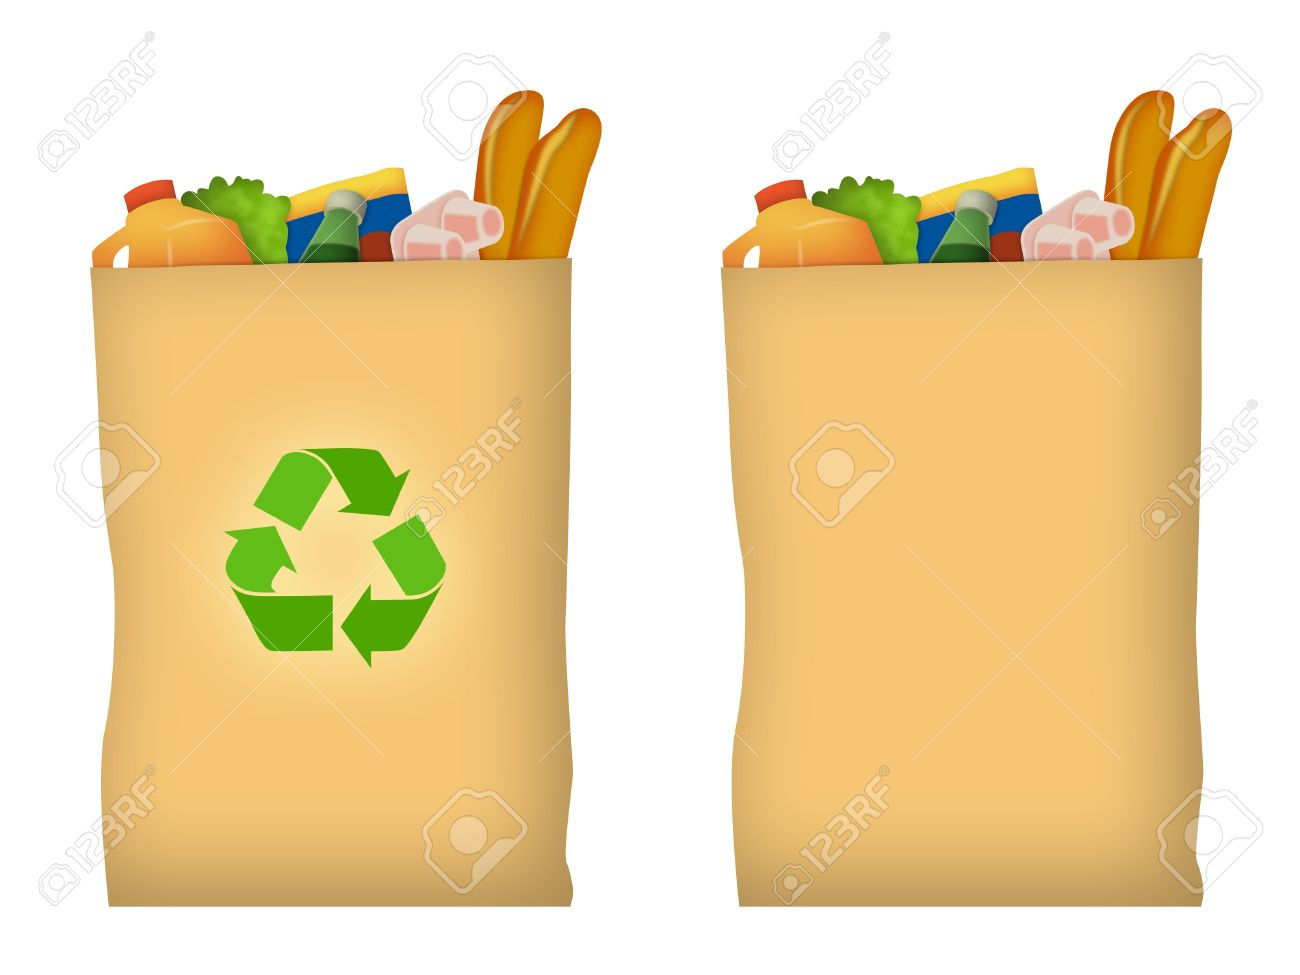 Brown paper grocery bag with recycle symbol. - 9739176